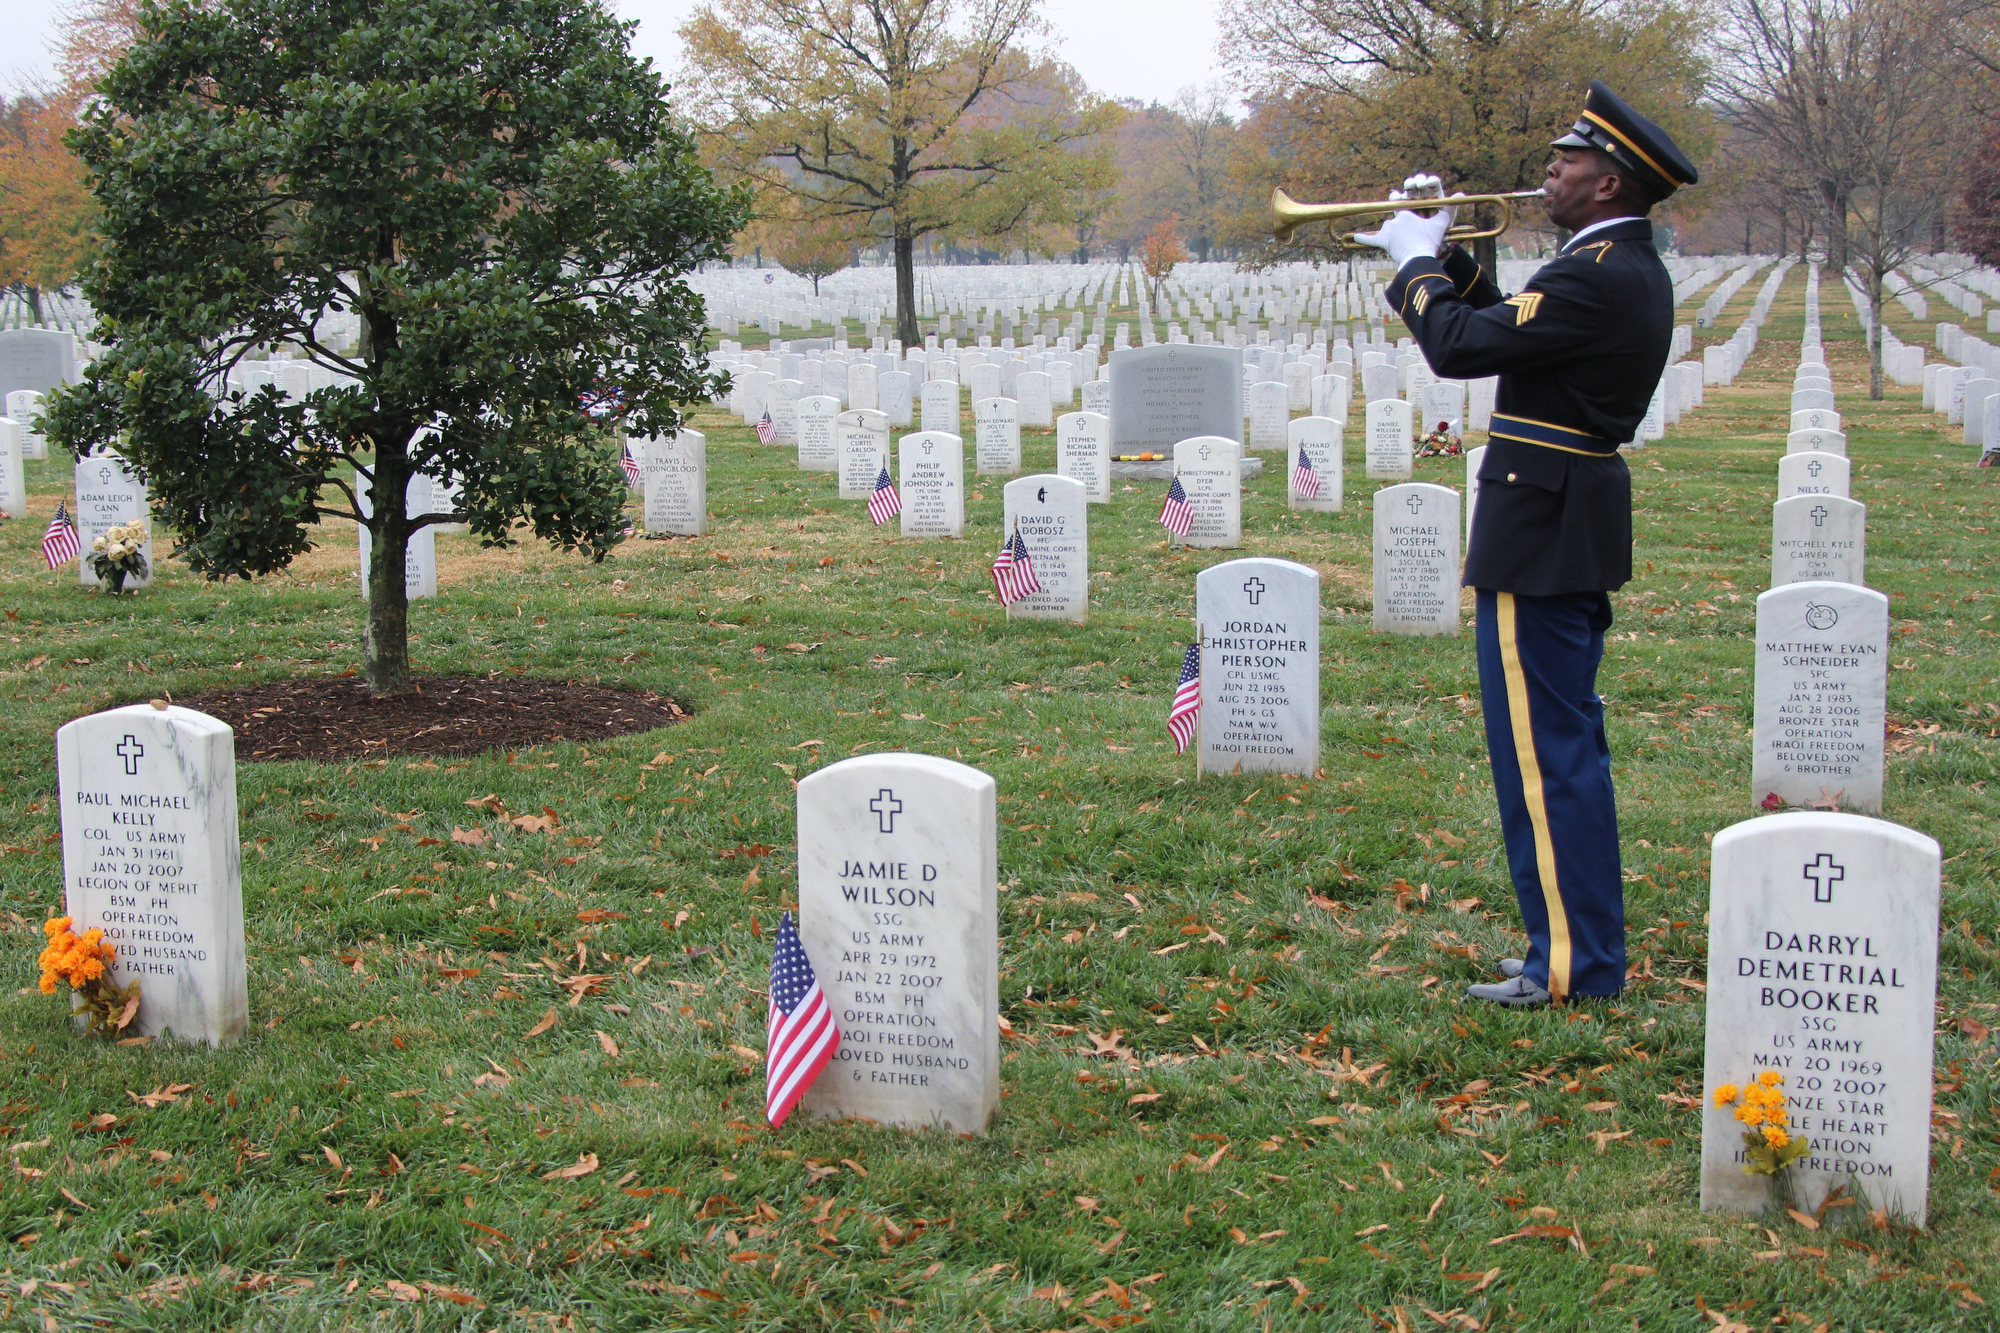 Soldier plays tribute to fallen comrades at Arlington National Cemetery